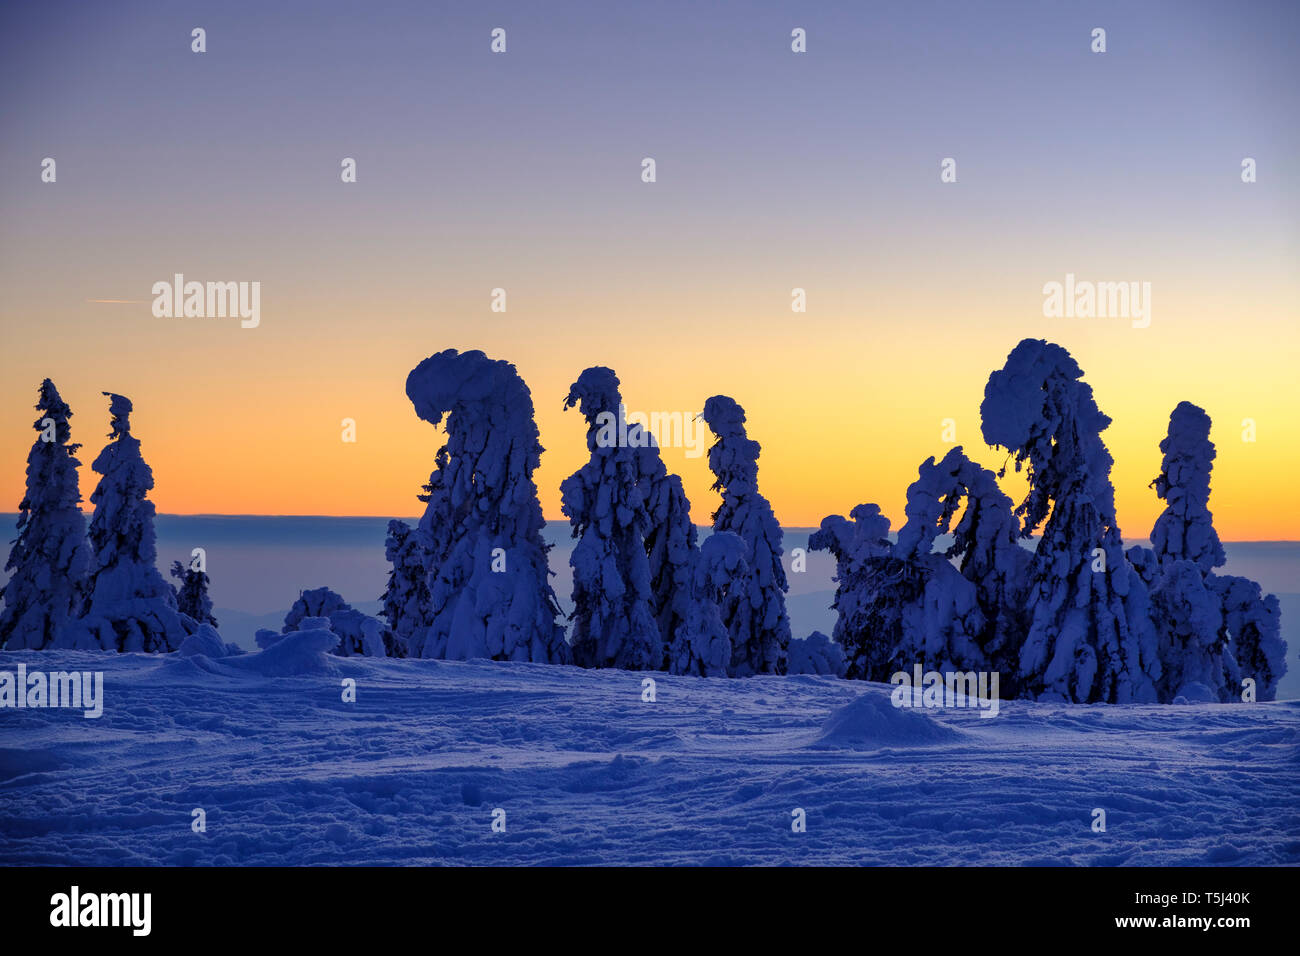 Germany, Bavaria, Bavarian Forest in winter, Great Arber, Arbermandl, snow-capped spruces at sunset - Stock Image